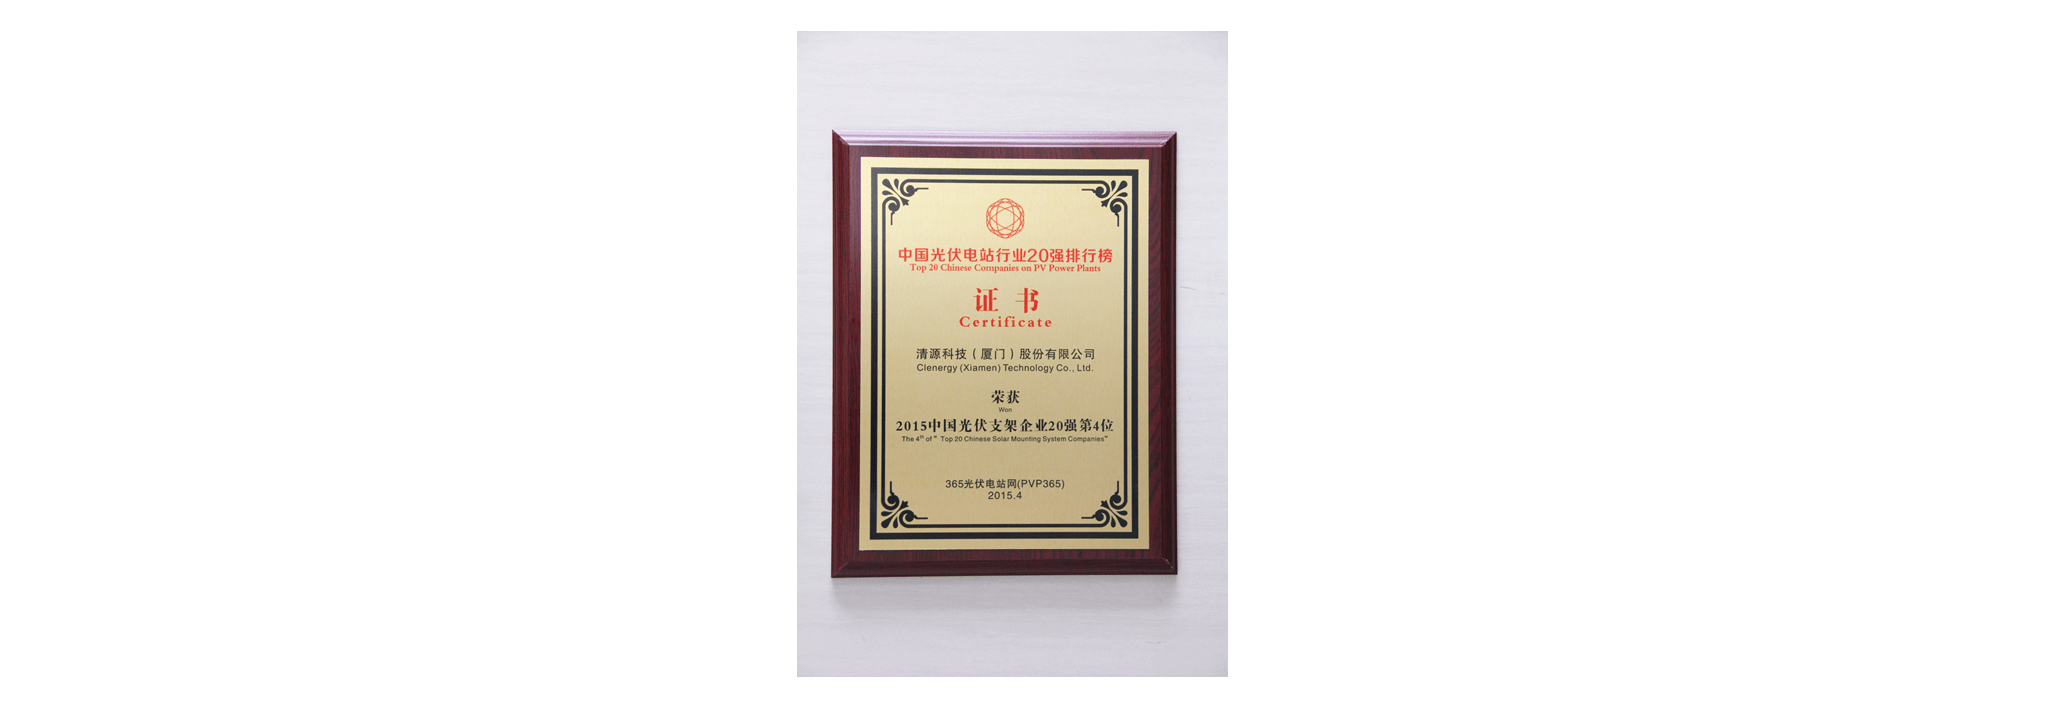 Clenergy Named One of the Top 20 Solar Mounting System Manufacturers in China 2015